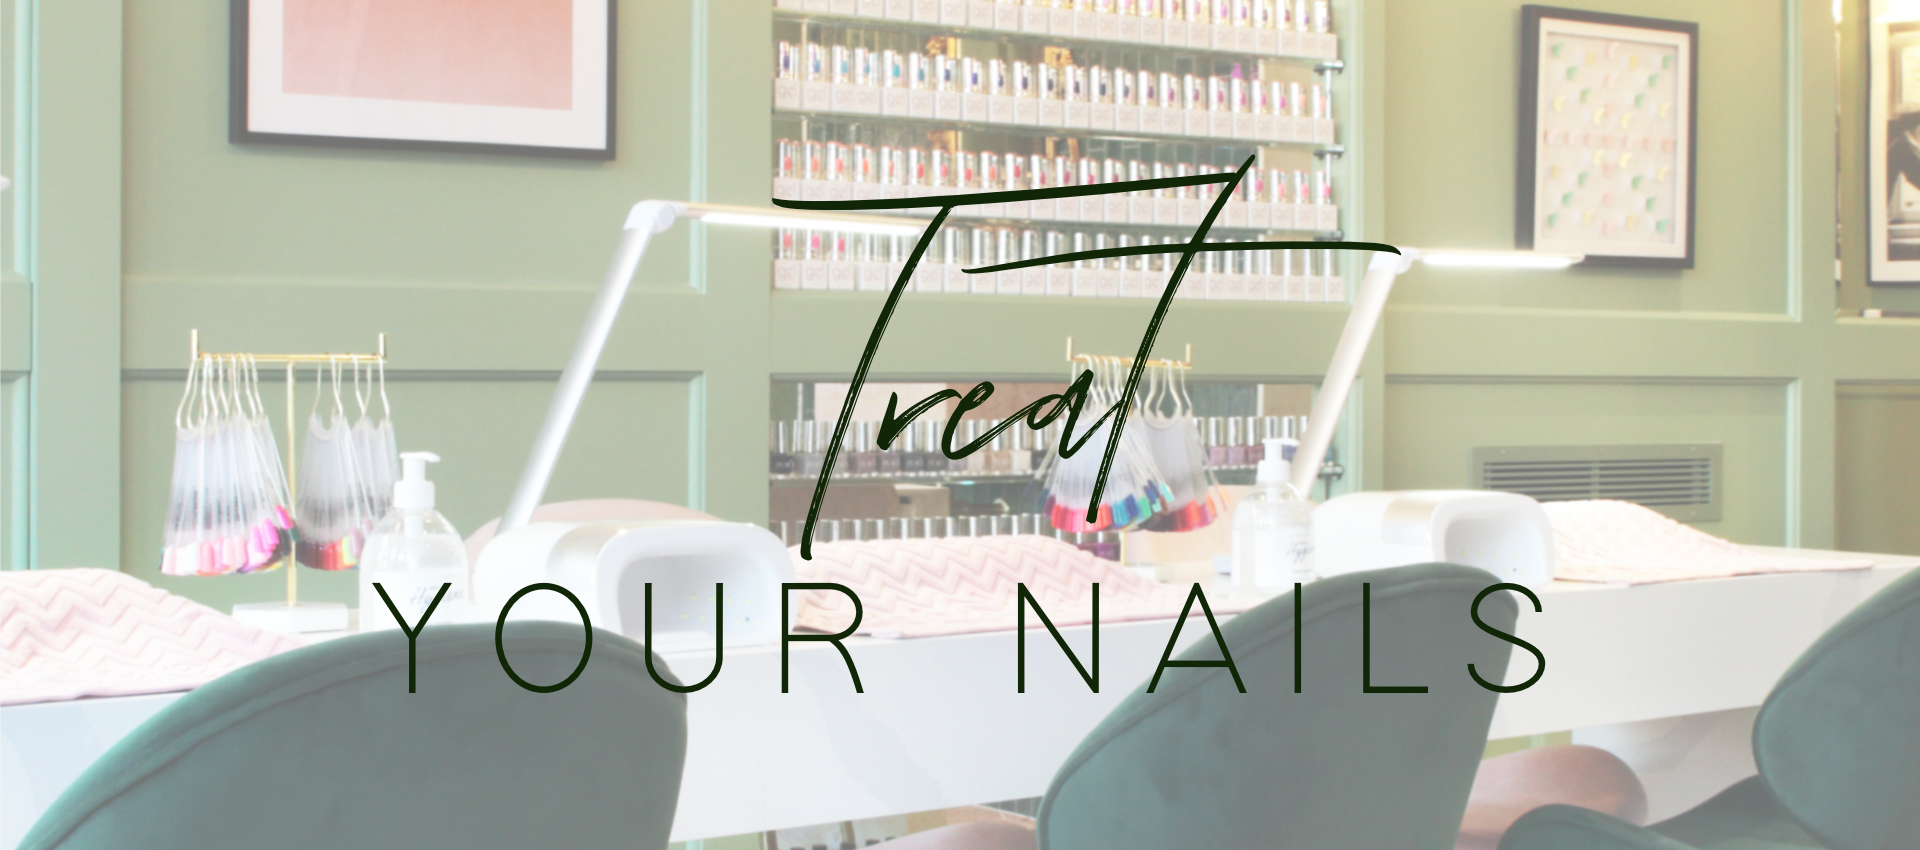 Treat Your Nails at 12 The Green